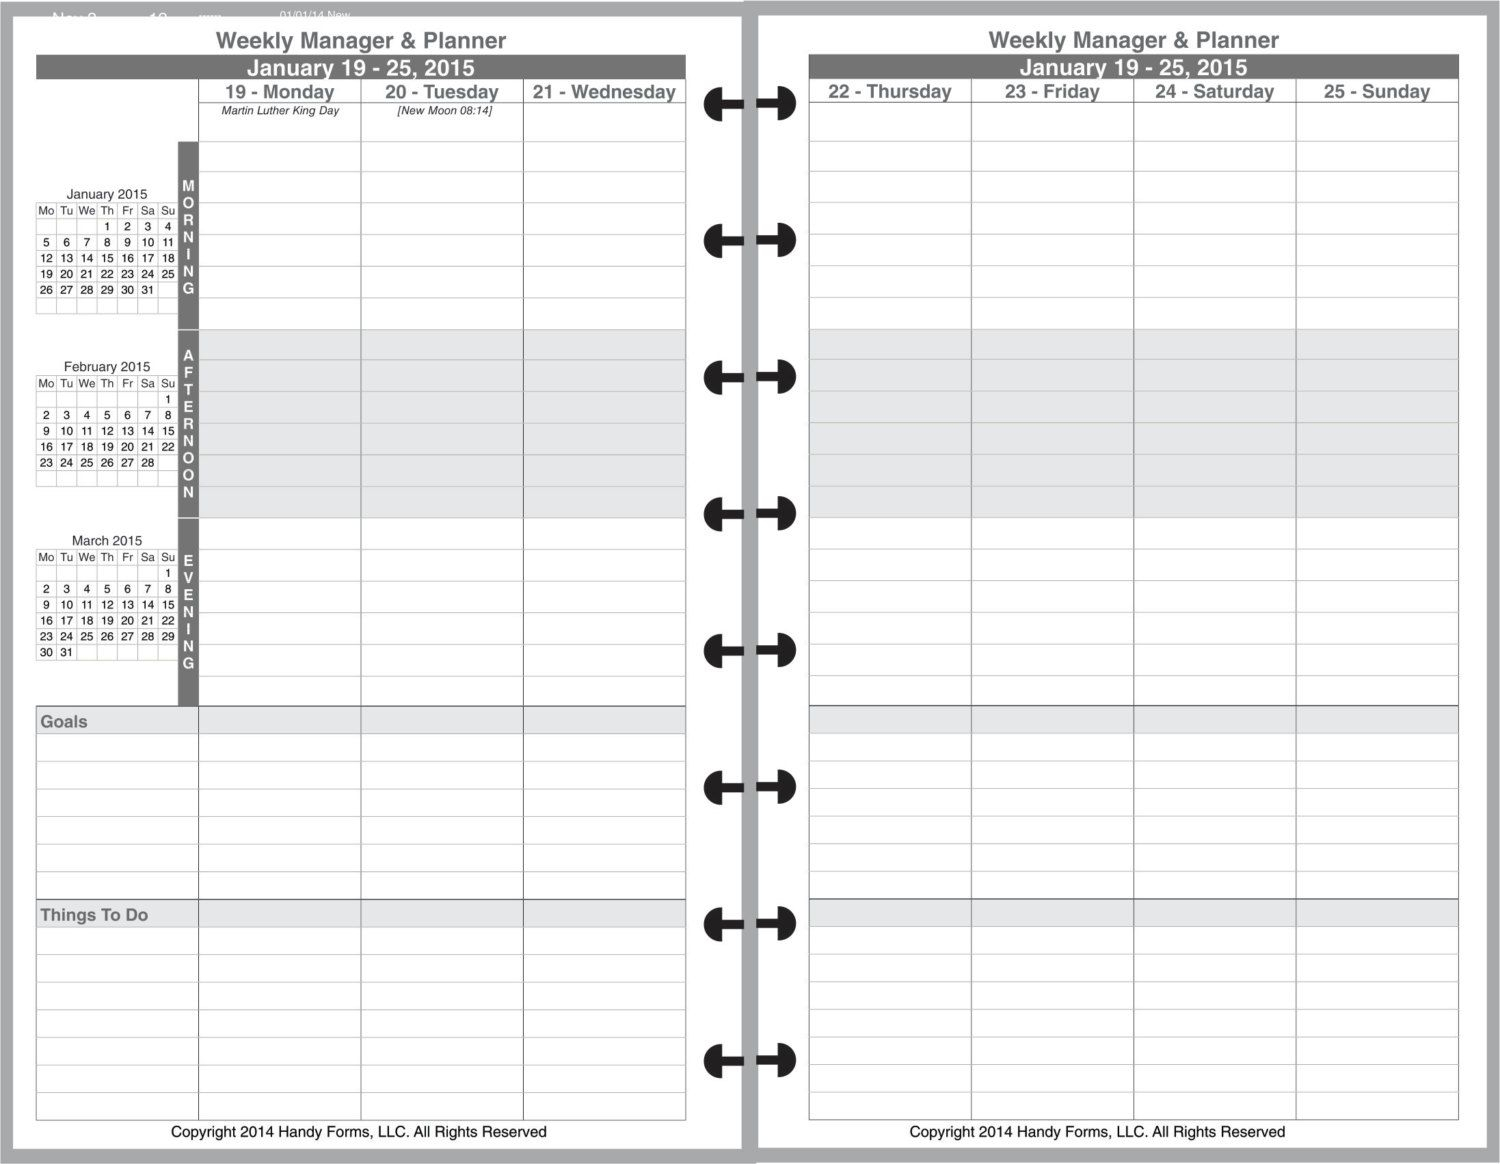 Weekly Manager Planner Organizer 2 Page Per Week 5